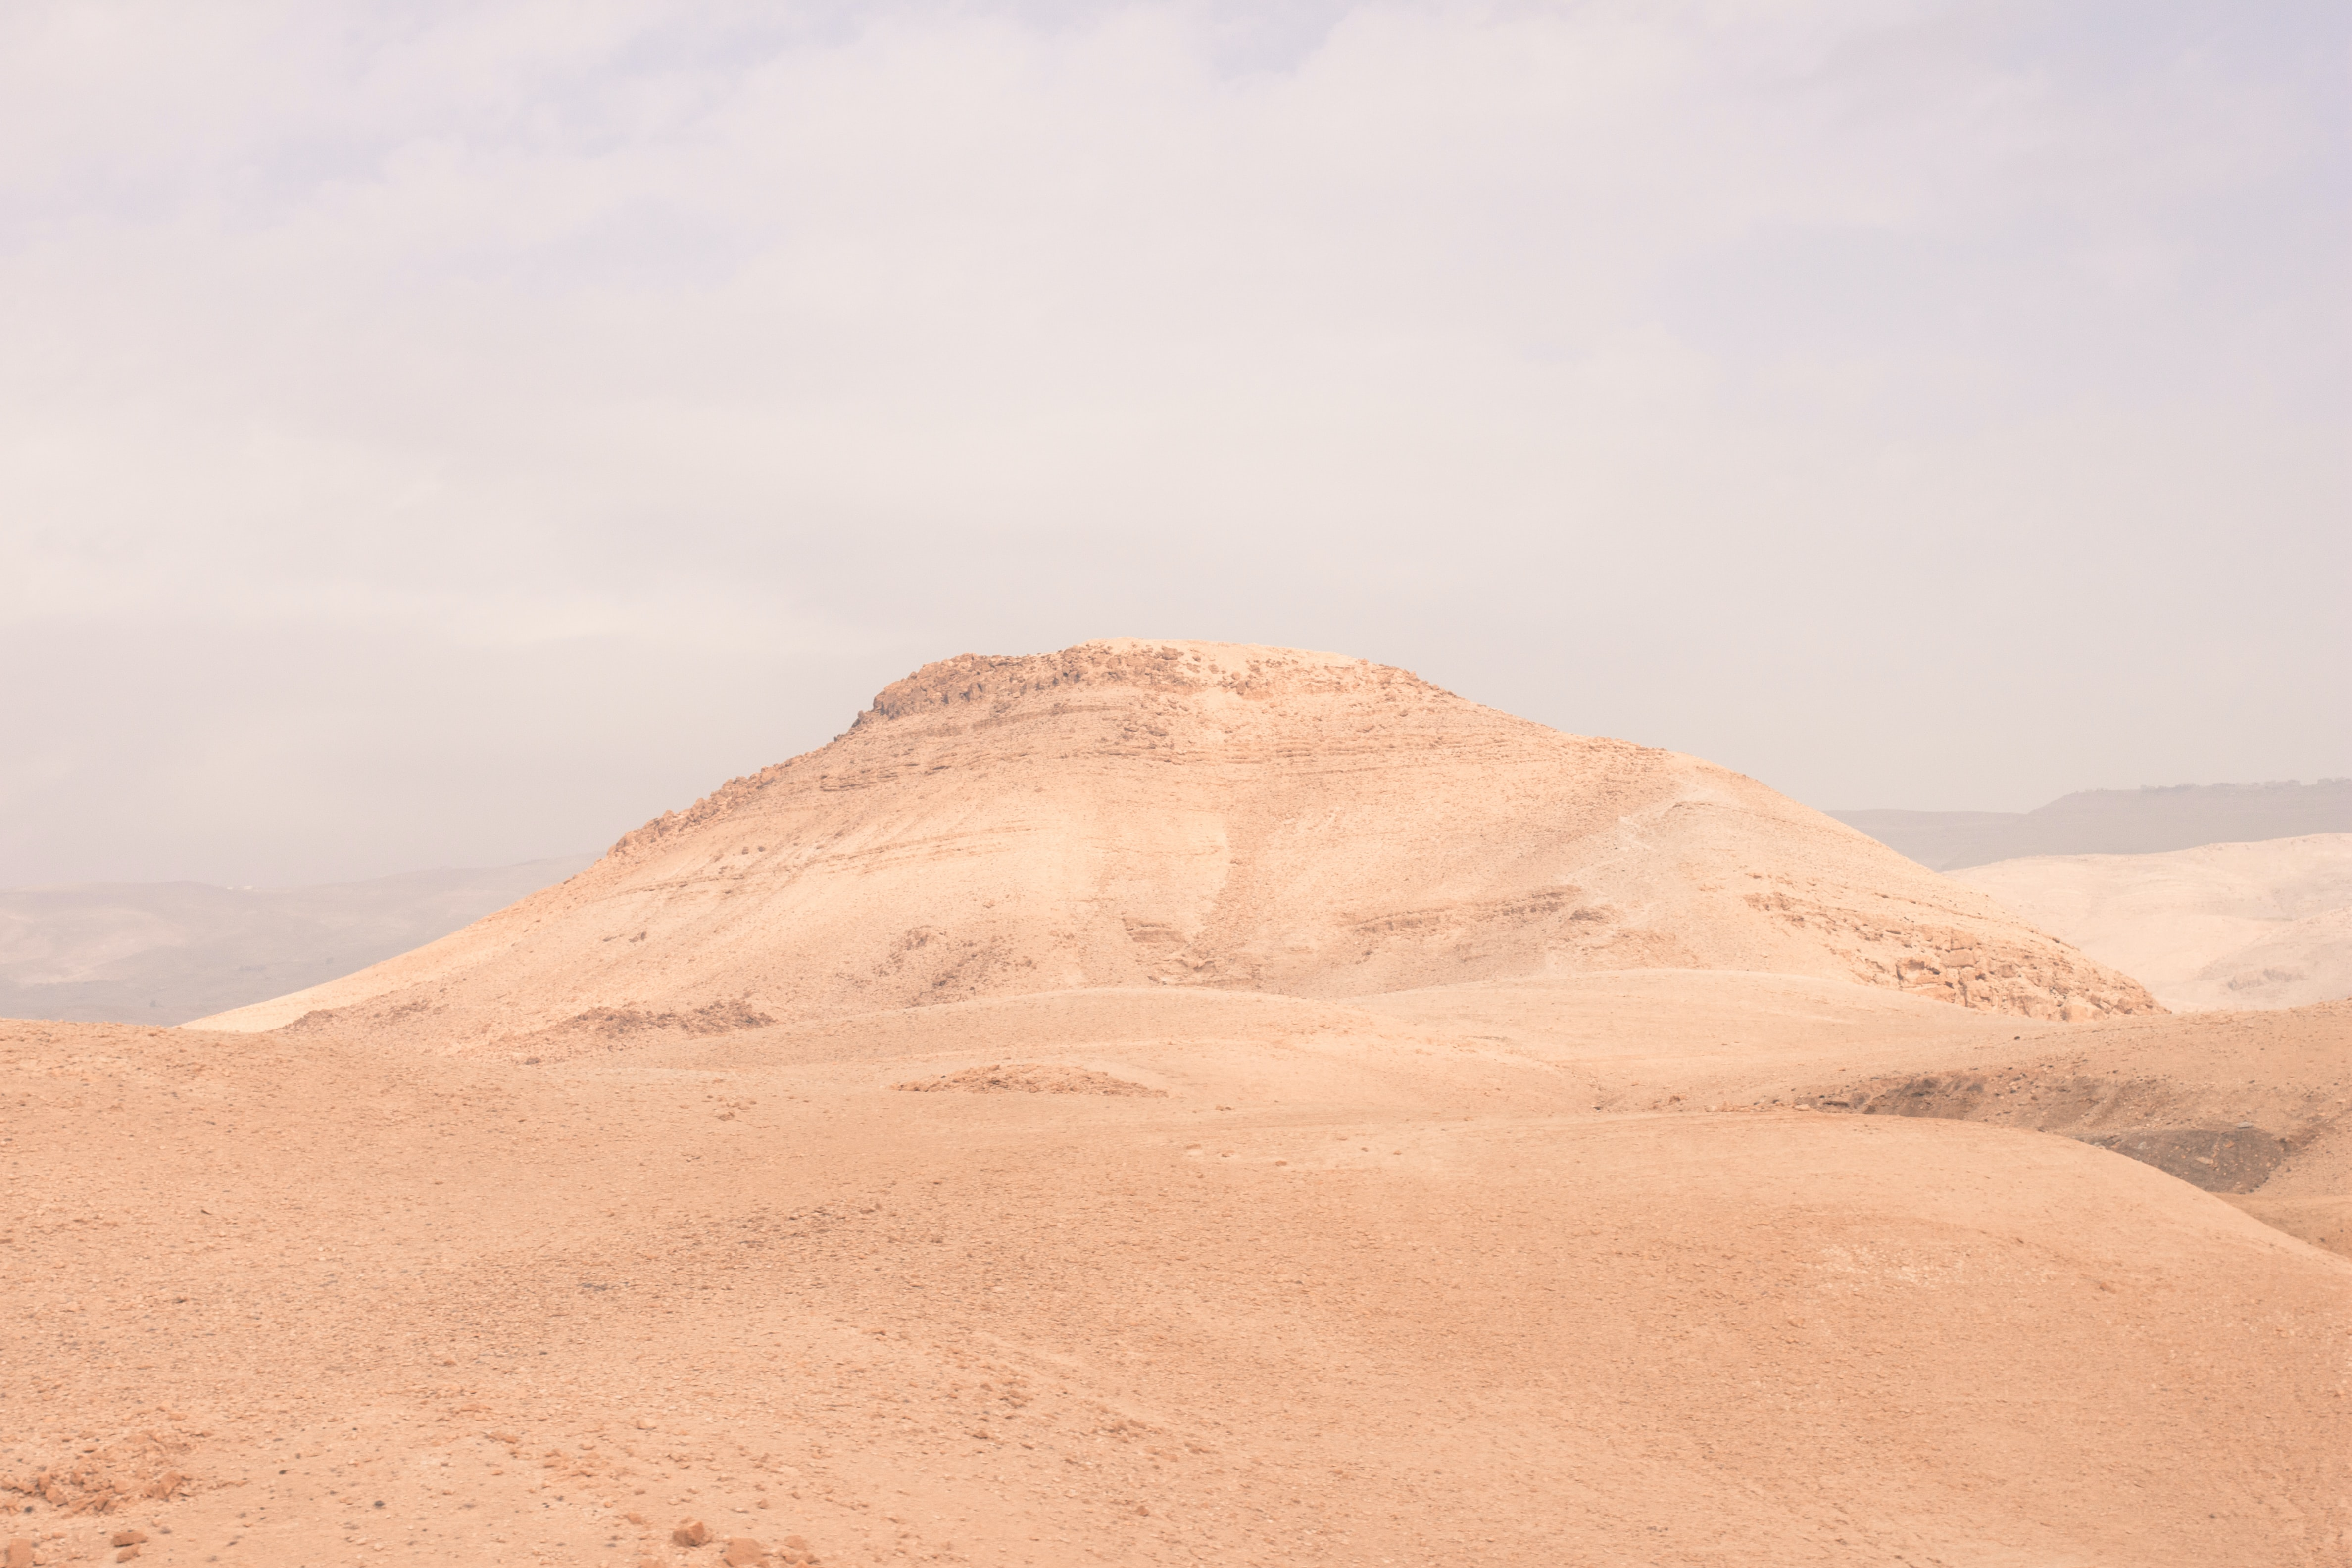 White sand formations in the desert of Jordan